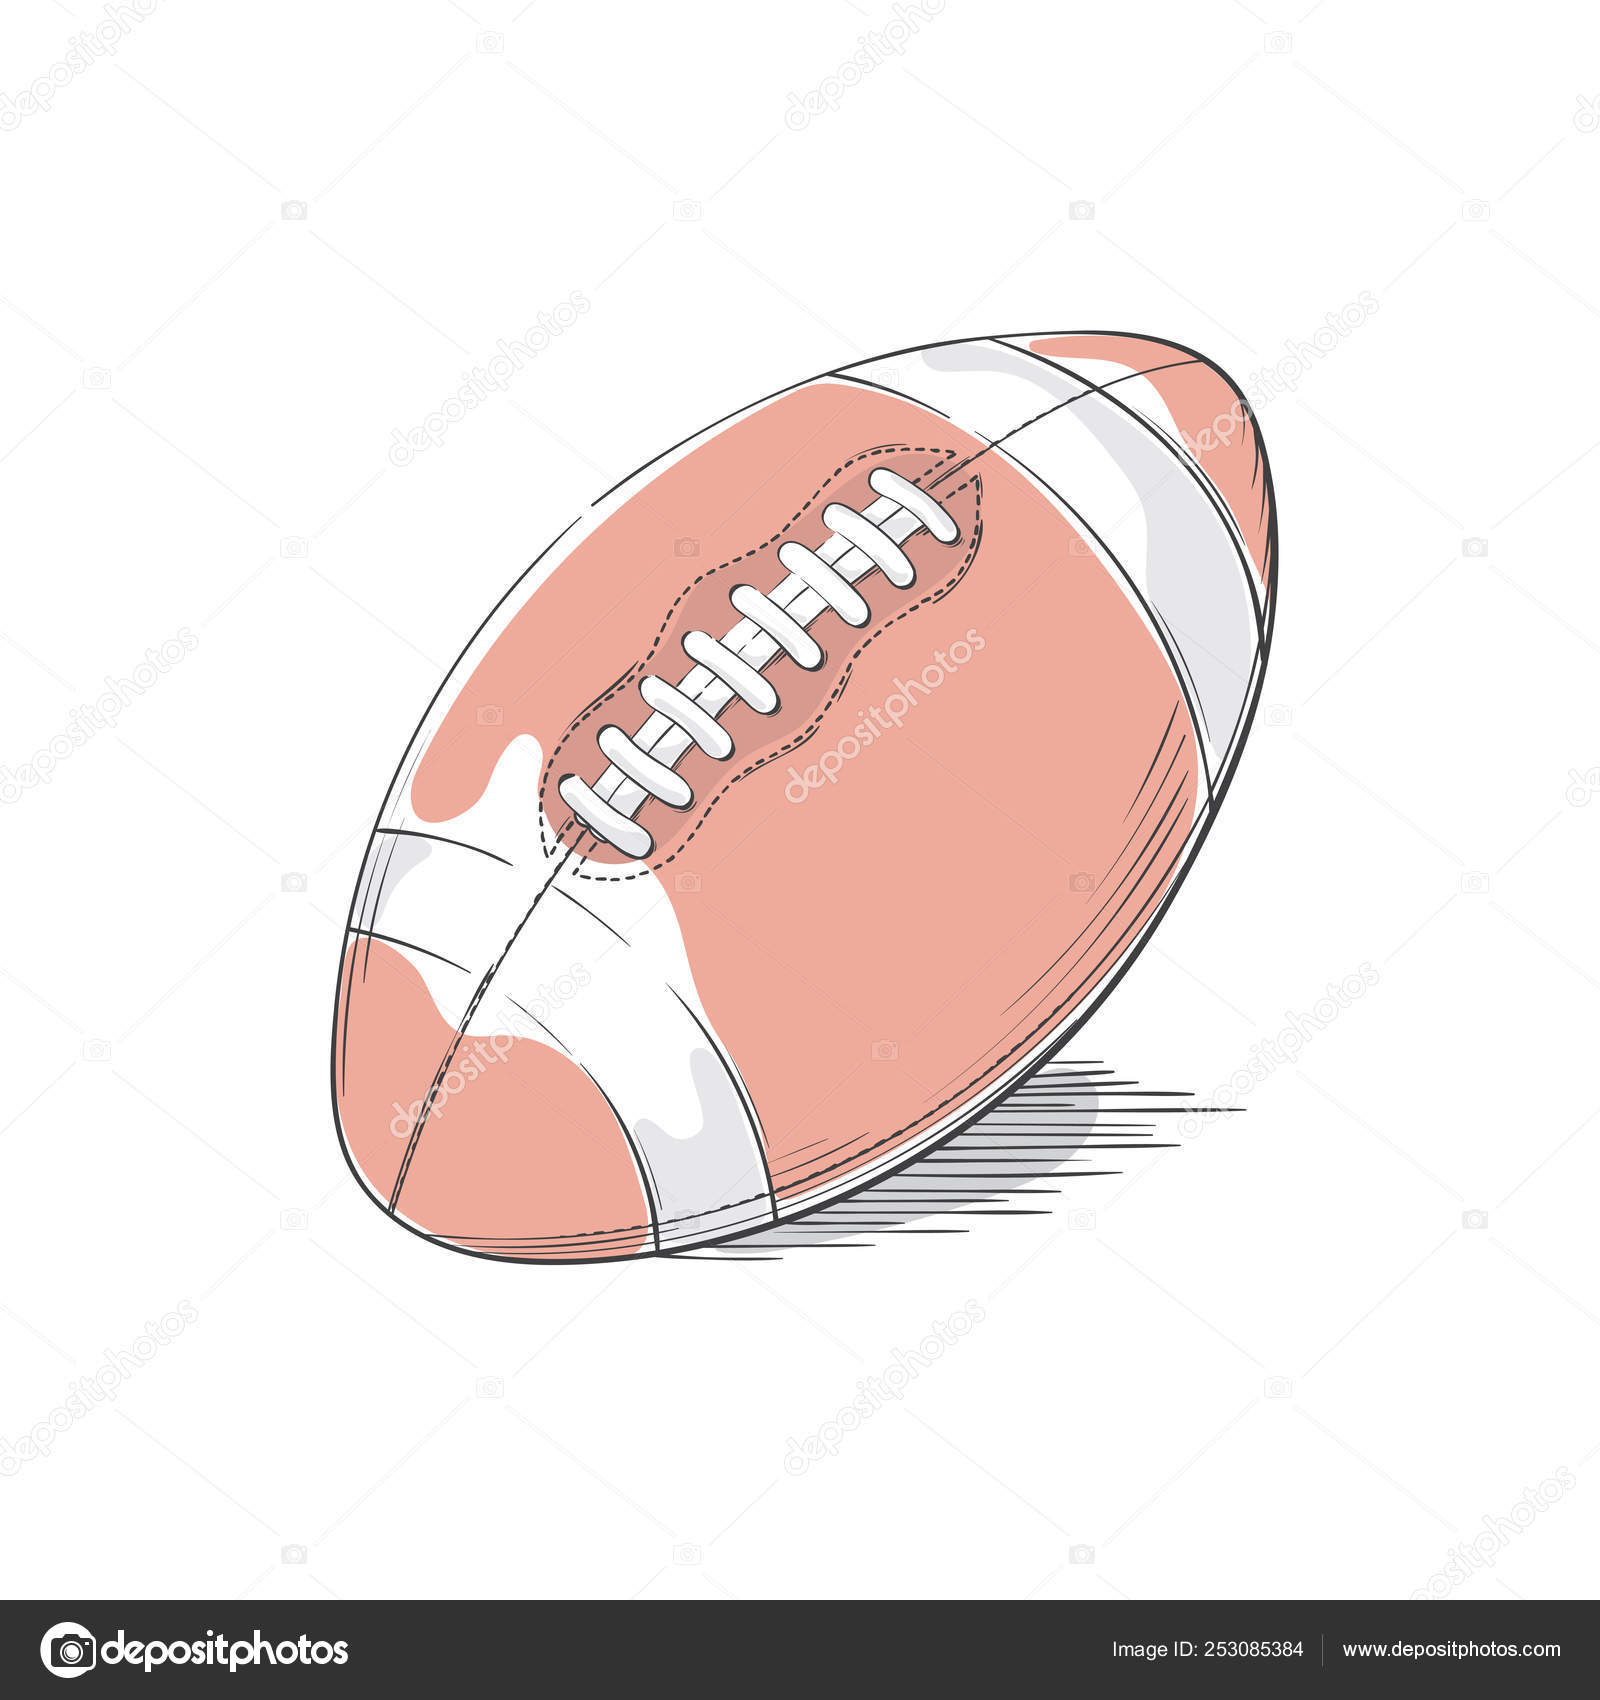 American Football Or Rugby Ball Equipment Leather Sporting Item With Stitches Stock Vector C Nychytalyuk 253085384